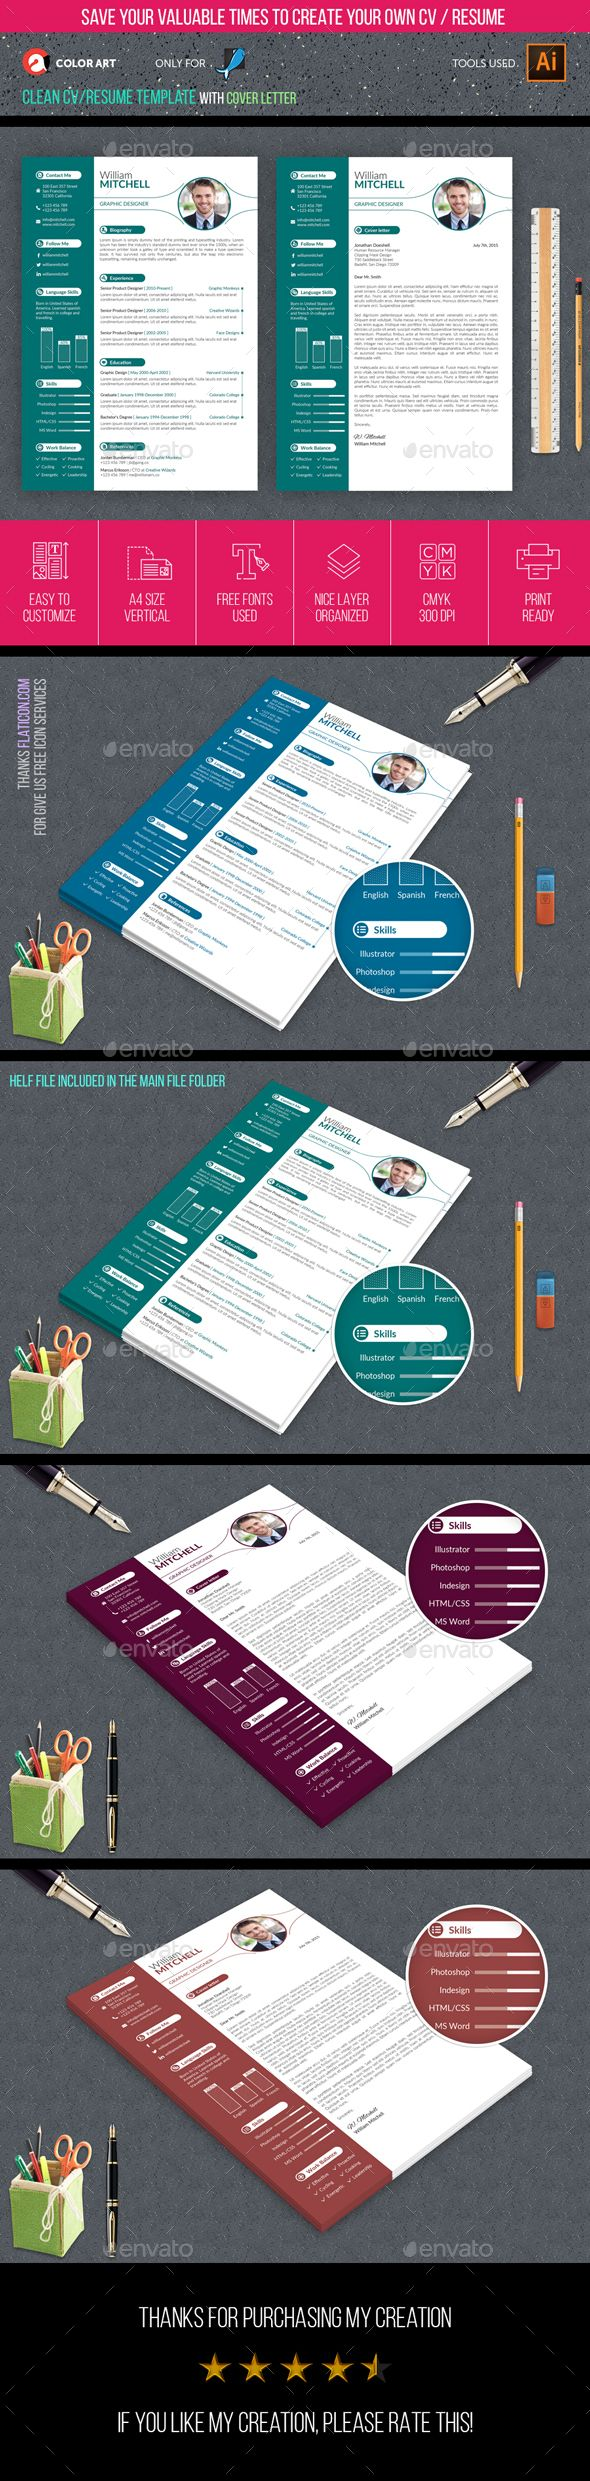 What Is An Objective In A Resume Word  Best Images About Resume On Pinterest  Template Creative  Er Rn Resume Excel with Sports Management Resume Pdf Resume Interesting Resumes